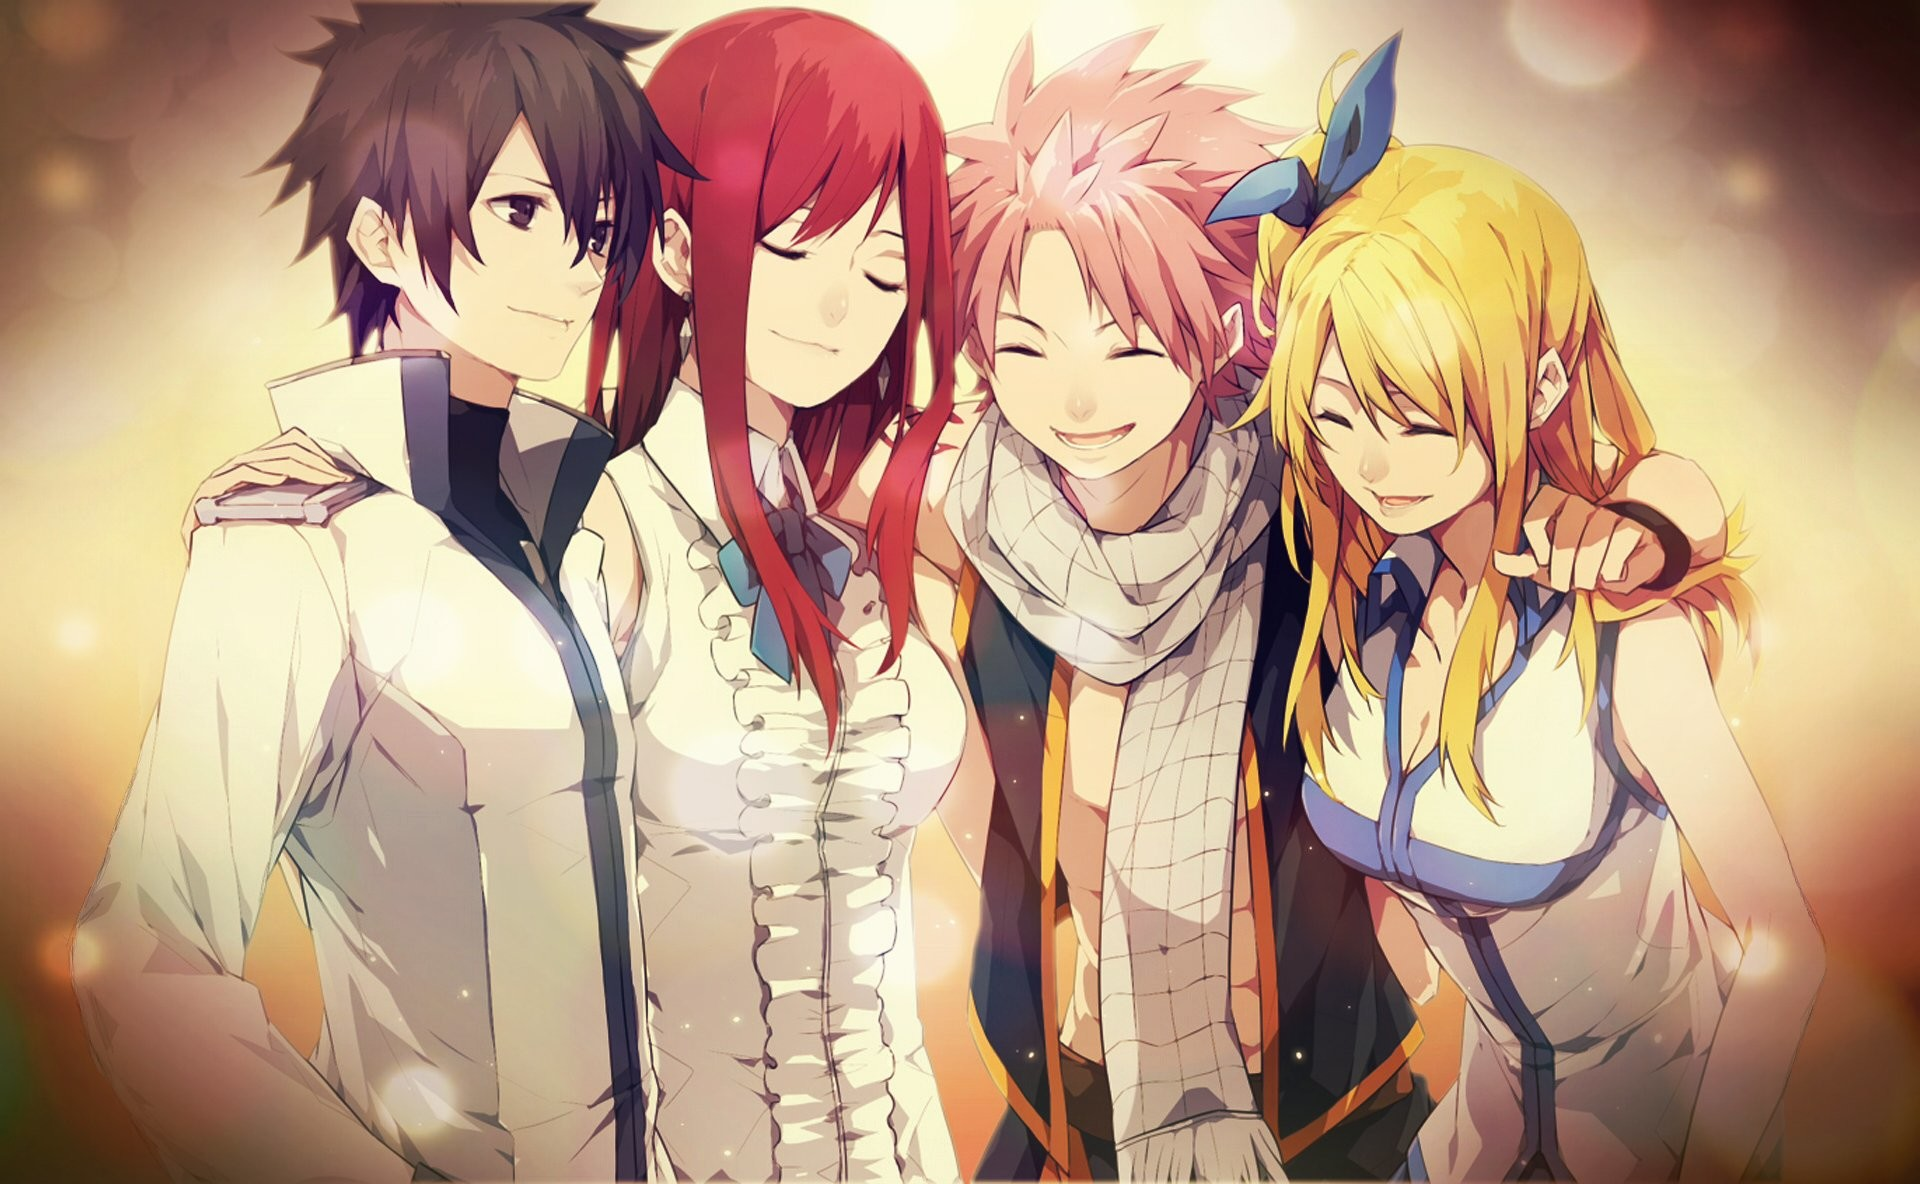 1920x1184 Anime - Fairy Tail Lucy Heartfilia Natsu Dragneel Erza Scarlet Gray  Fullbuster Wallpaper